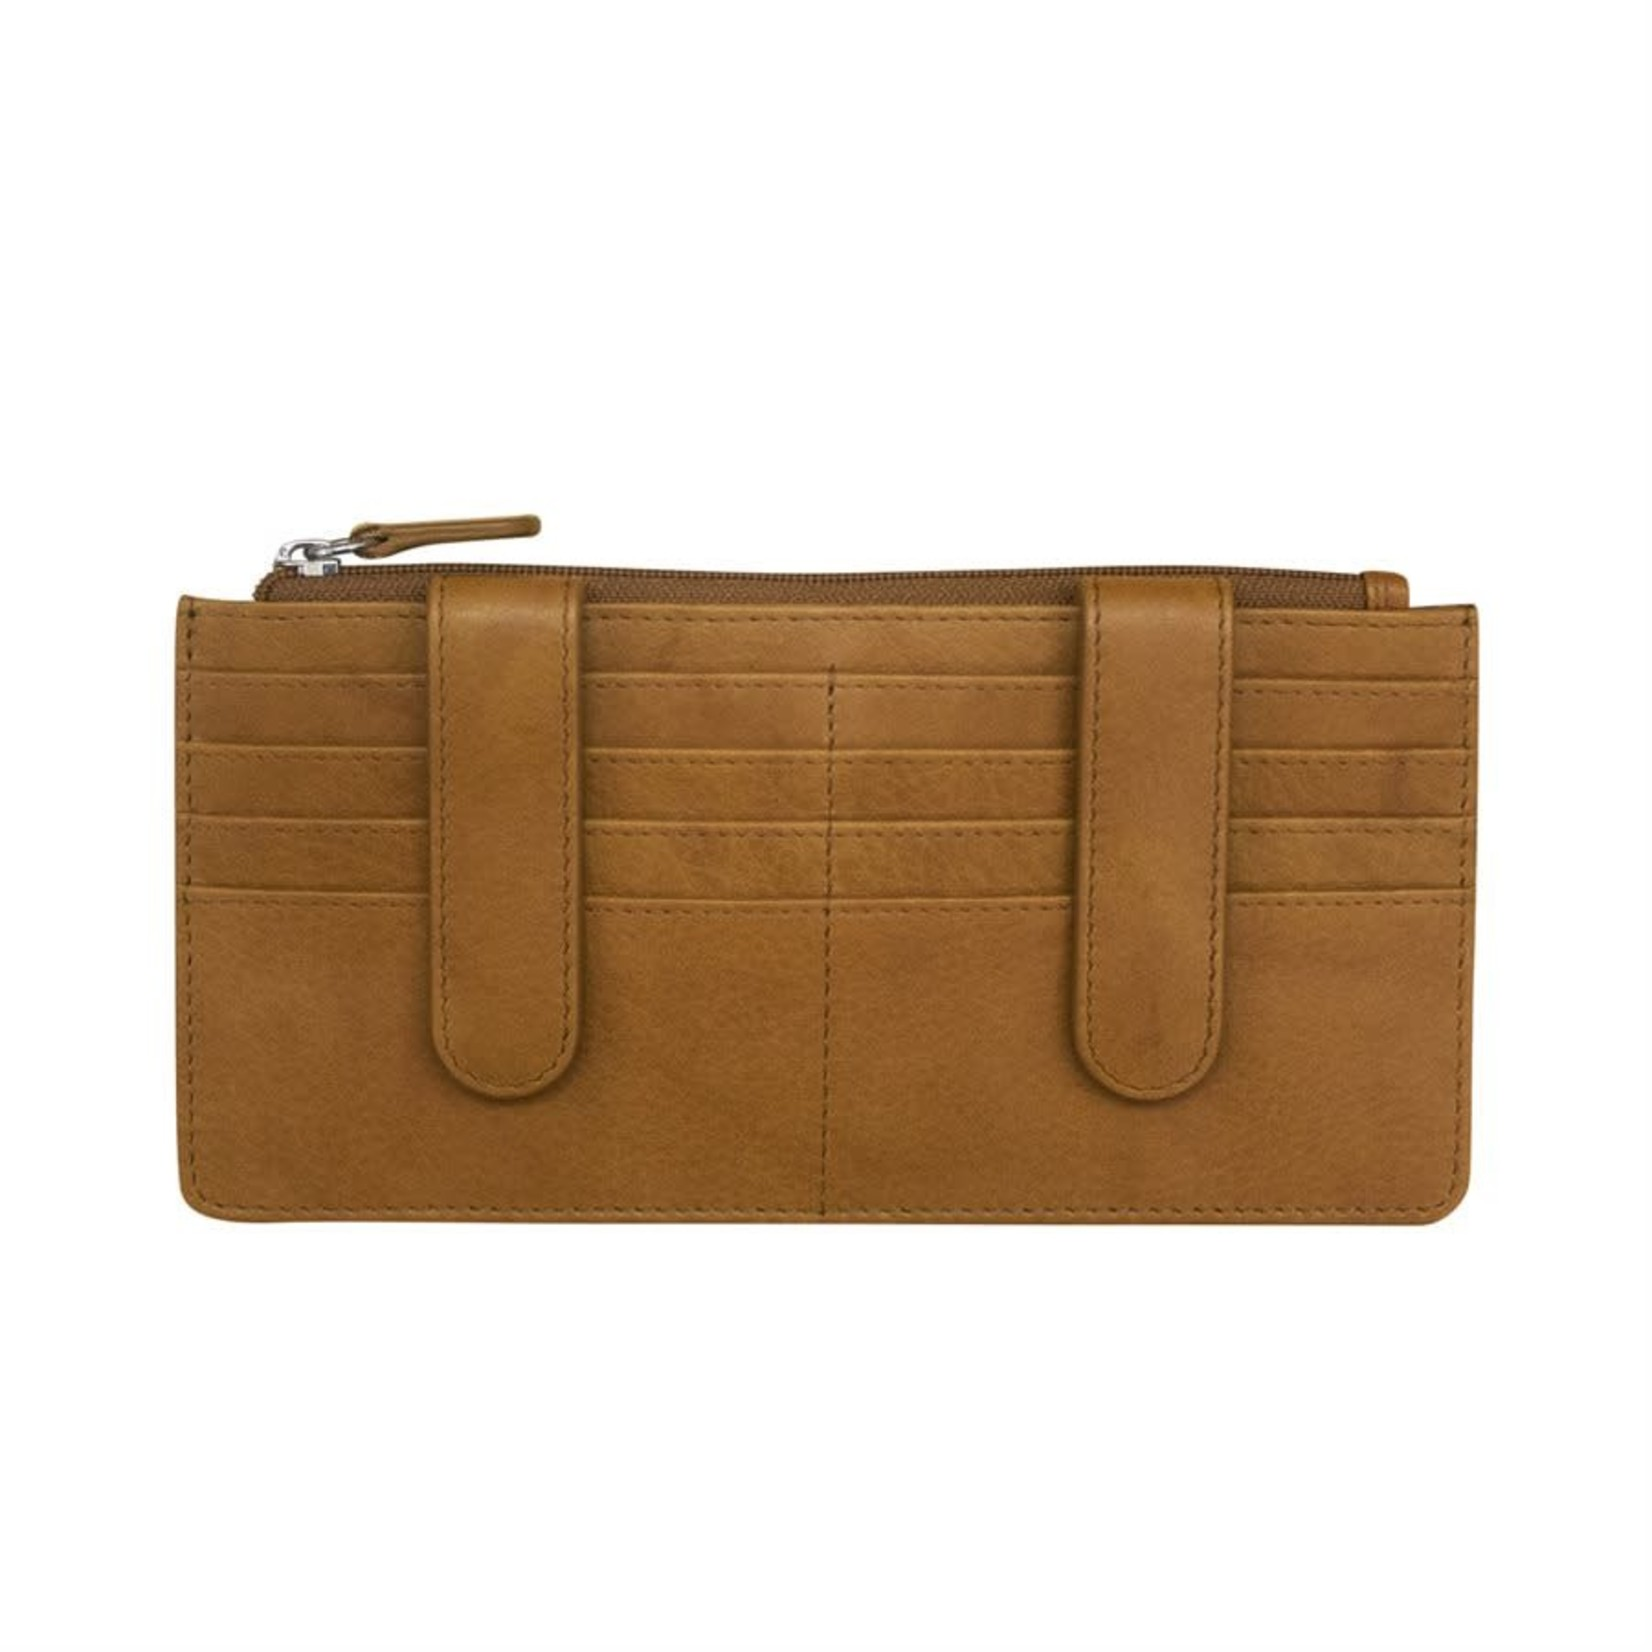 Leather Handbags and Accessories 7306 Antique Saddle - RFID Credit Card Wallet